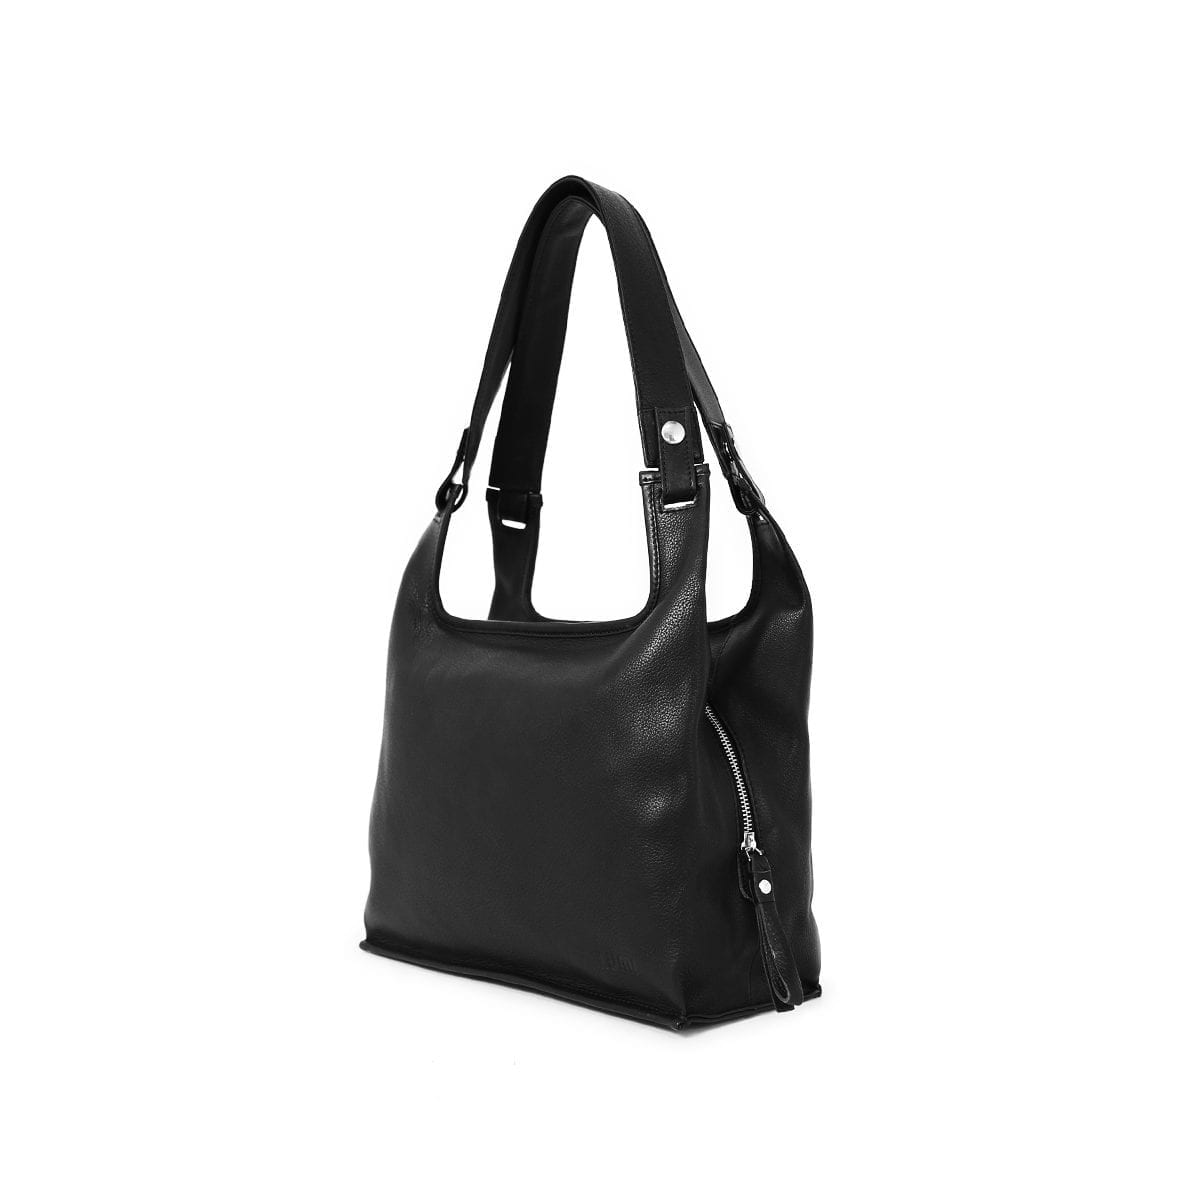 Medium Supermarket Bag in black